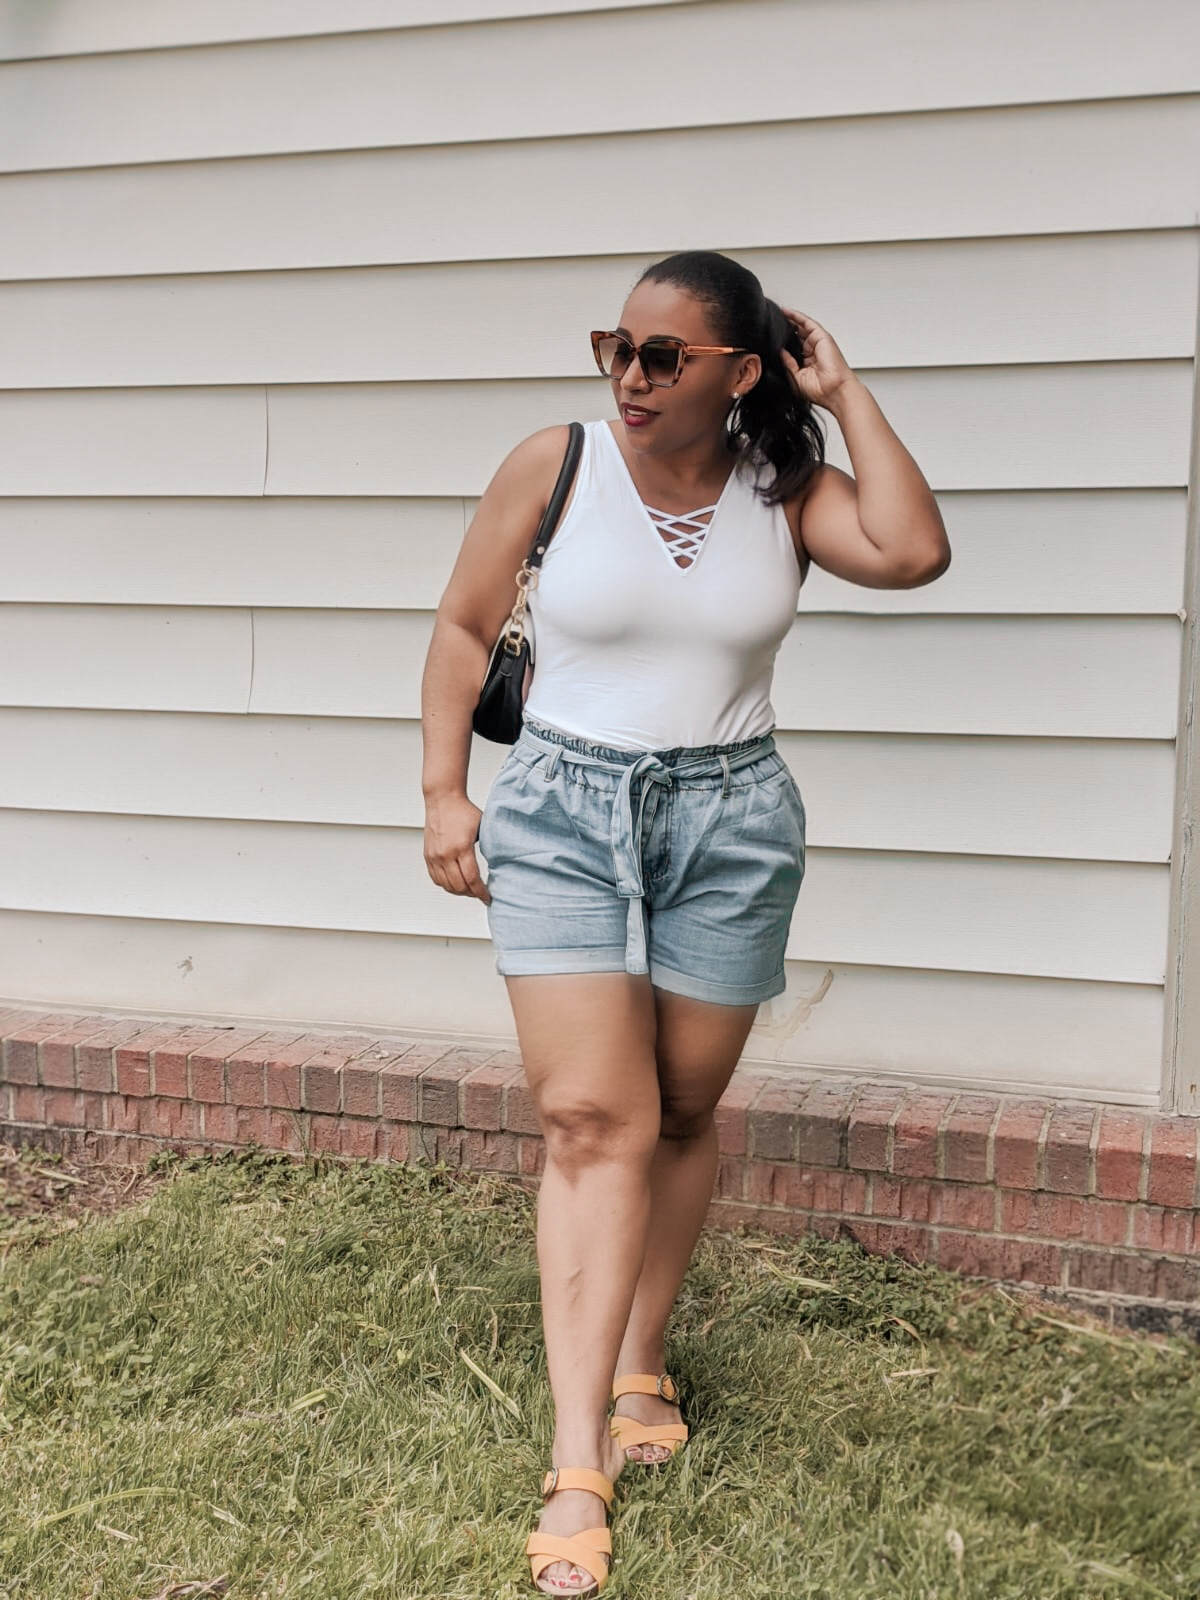 lookbook store, summer outfit ideas, denim shorts, how to style denim shorts, paper waist shorts, casual summer outfit ideas, pattys kloset